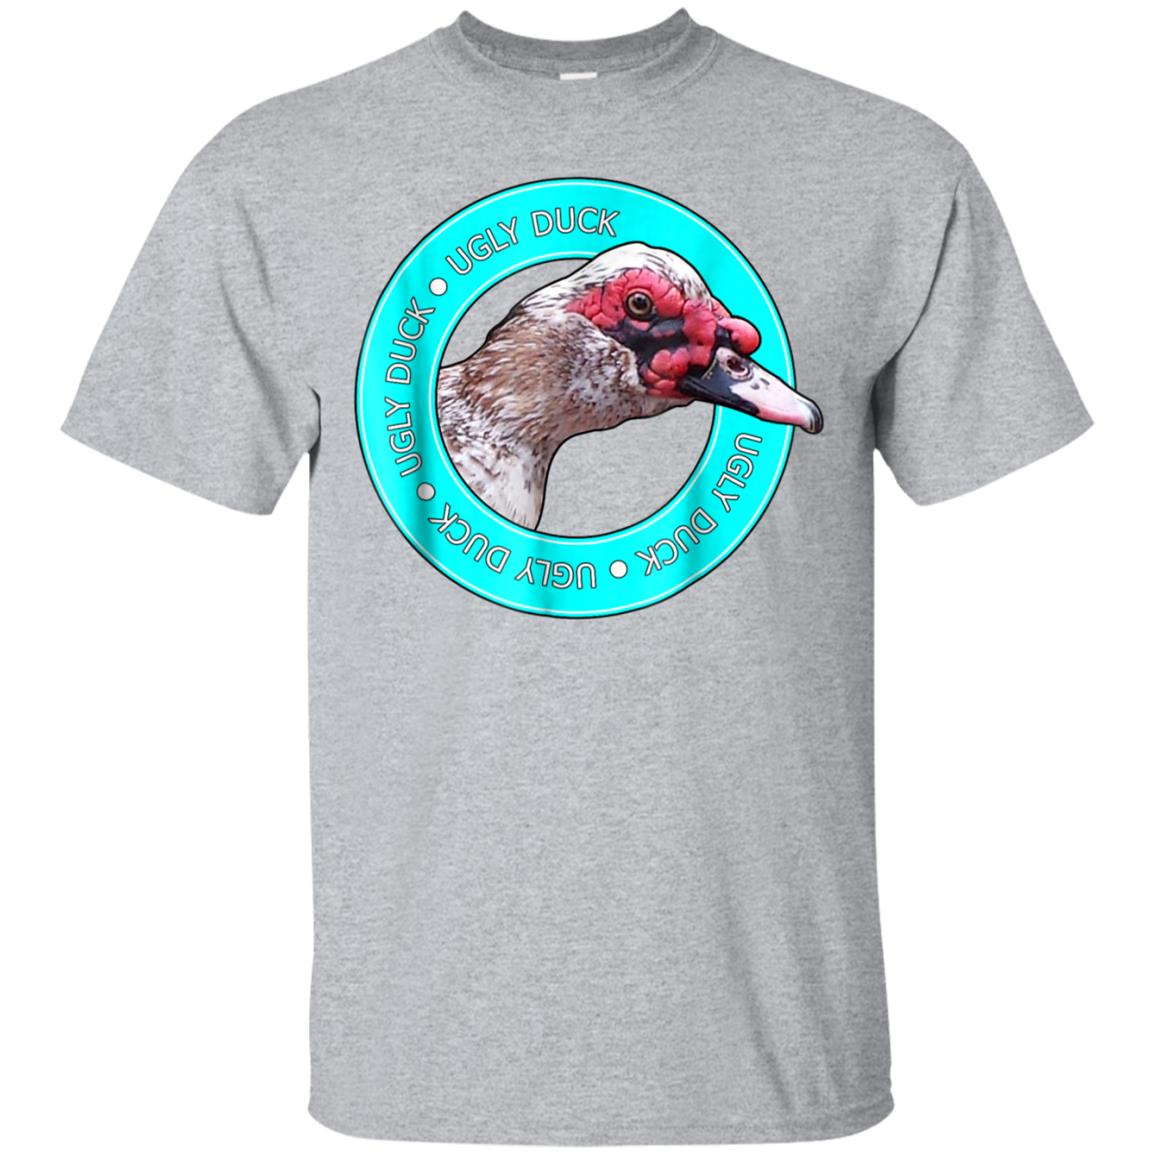 Ugly Duck T-Shirt 99promocode